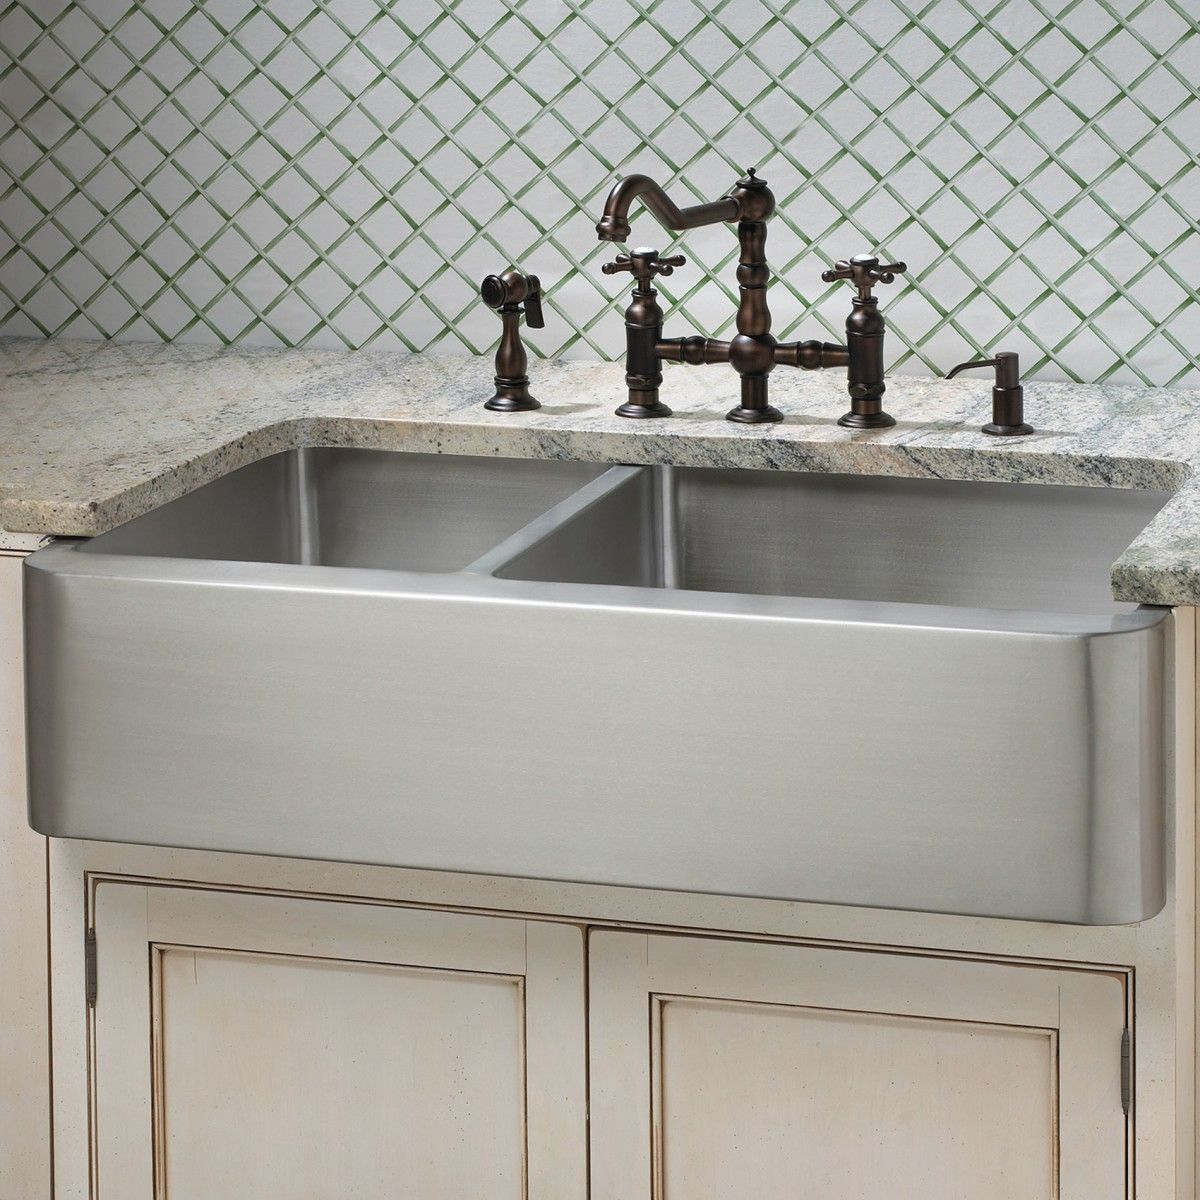 Farm sink for kitchens home depot with double chrome kitchen plug farm sink for kitchens home depot with double chrome kitchen plug plumbing kit workwithnaturefo